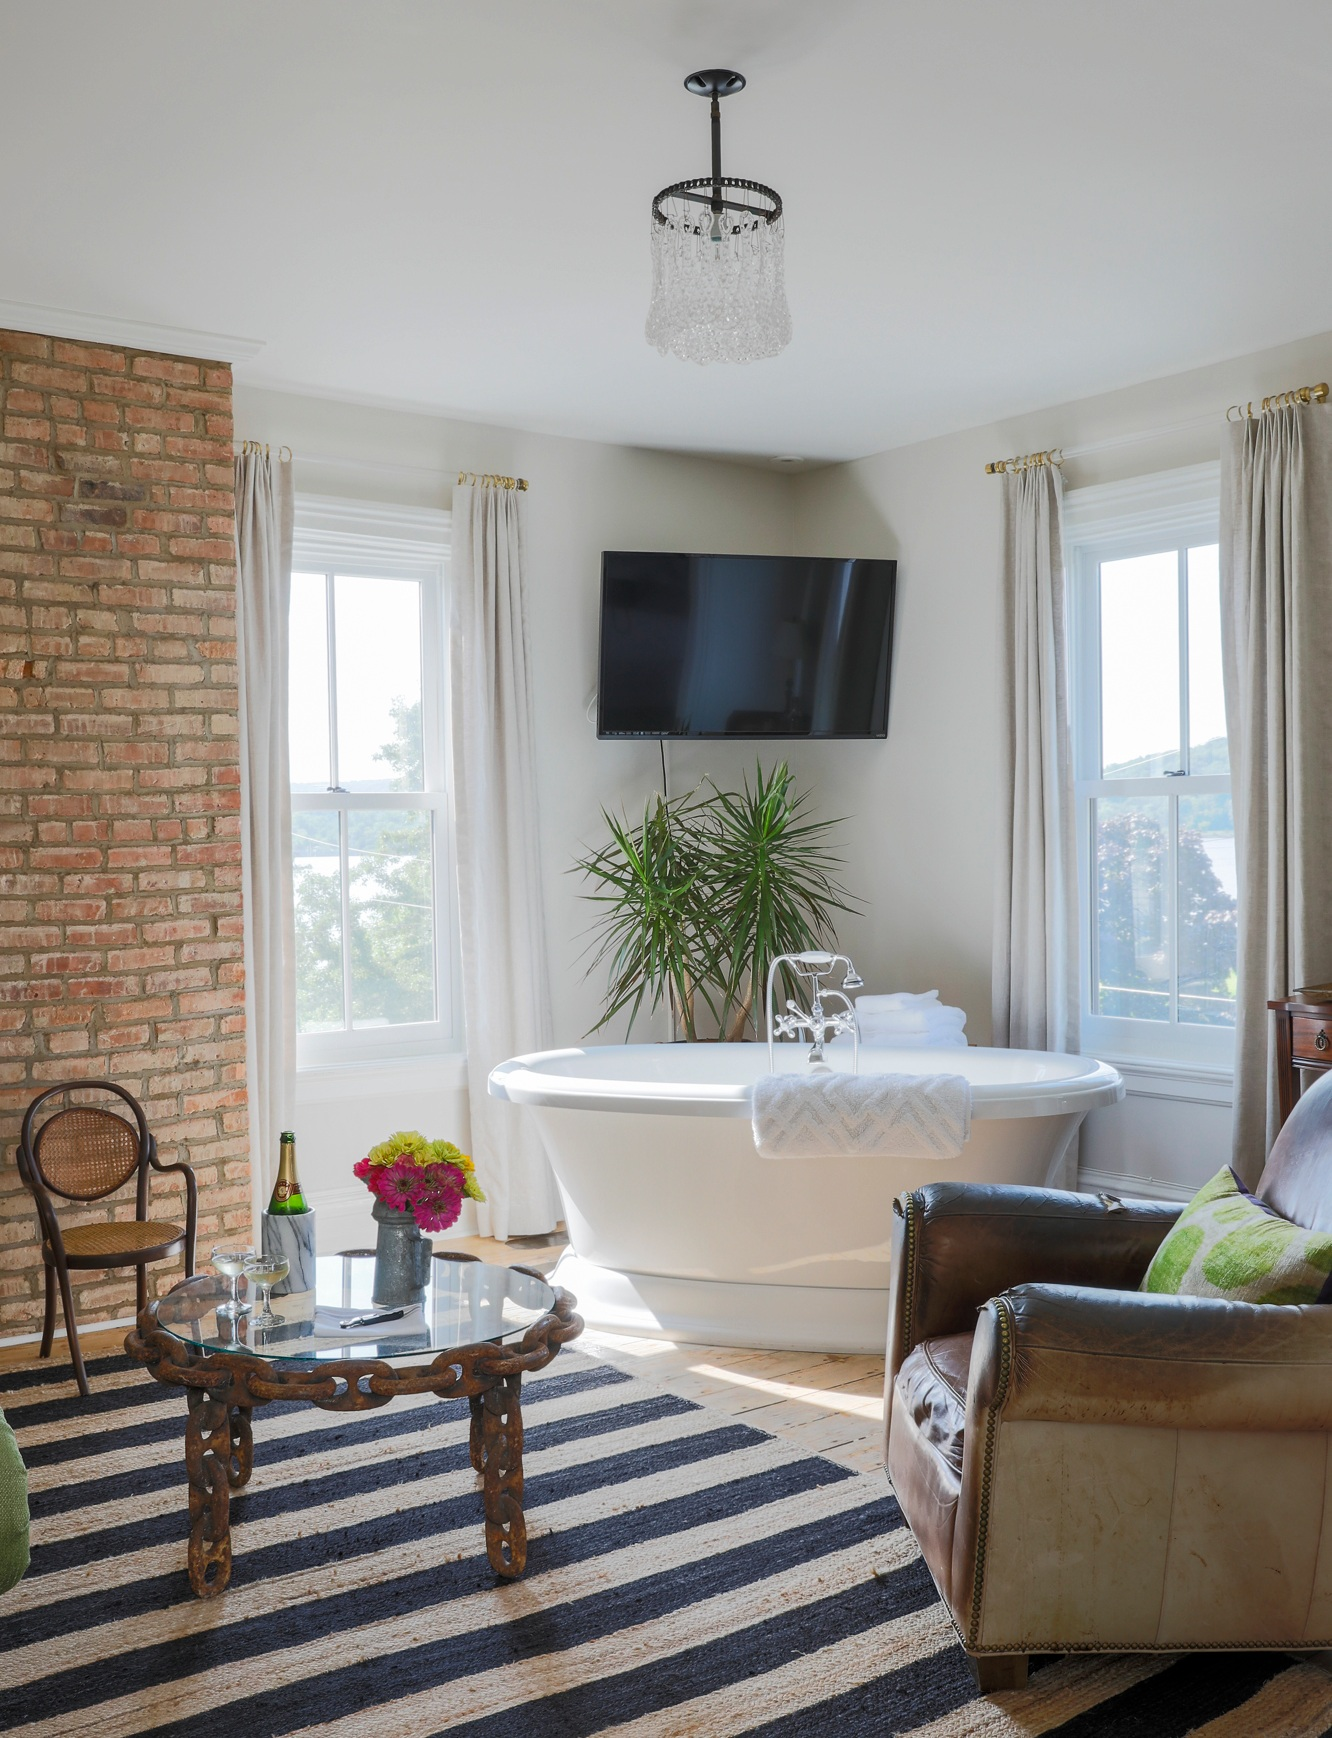 This large romantic suite boasts a living room with large soaking tub with a view of the Hudson and a separate bedroom with king size bed. - 400 sq ftPlease note this room is a 3rd floor walkup$349.00 per night for up to 2 people